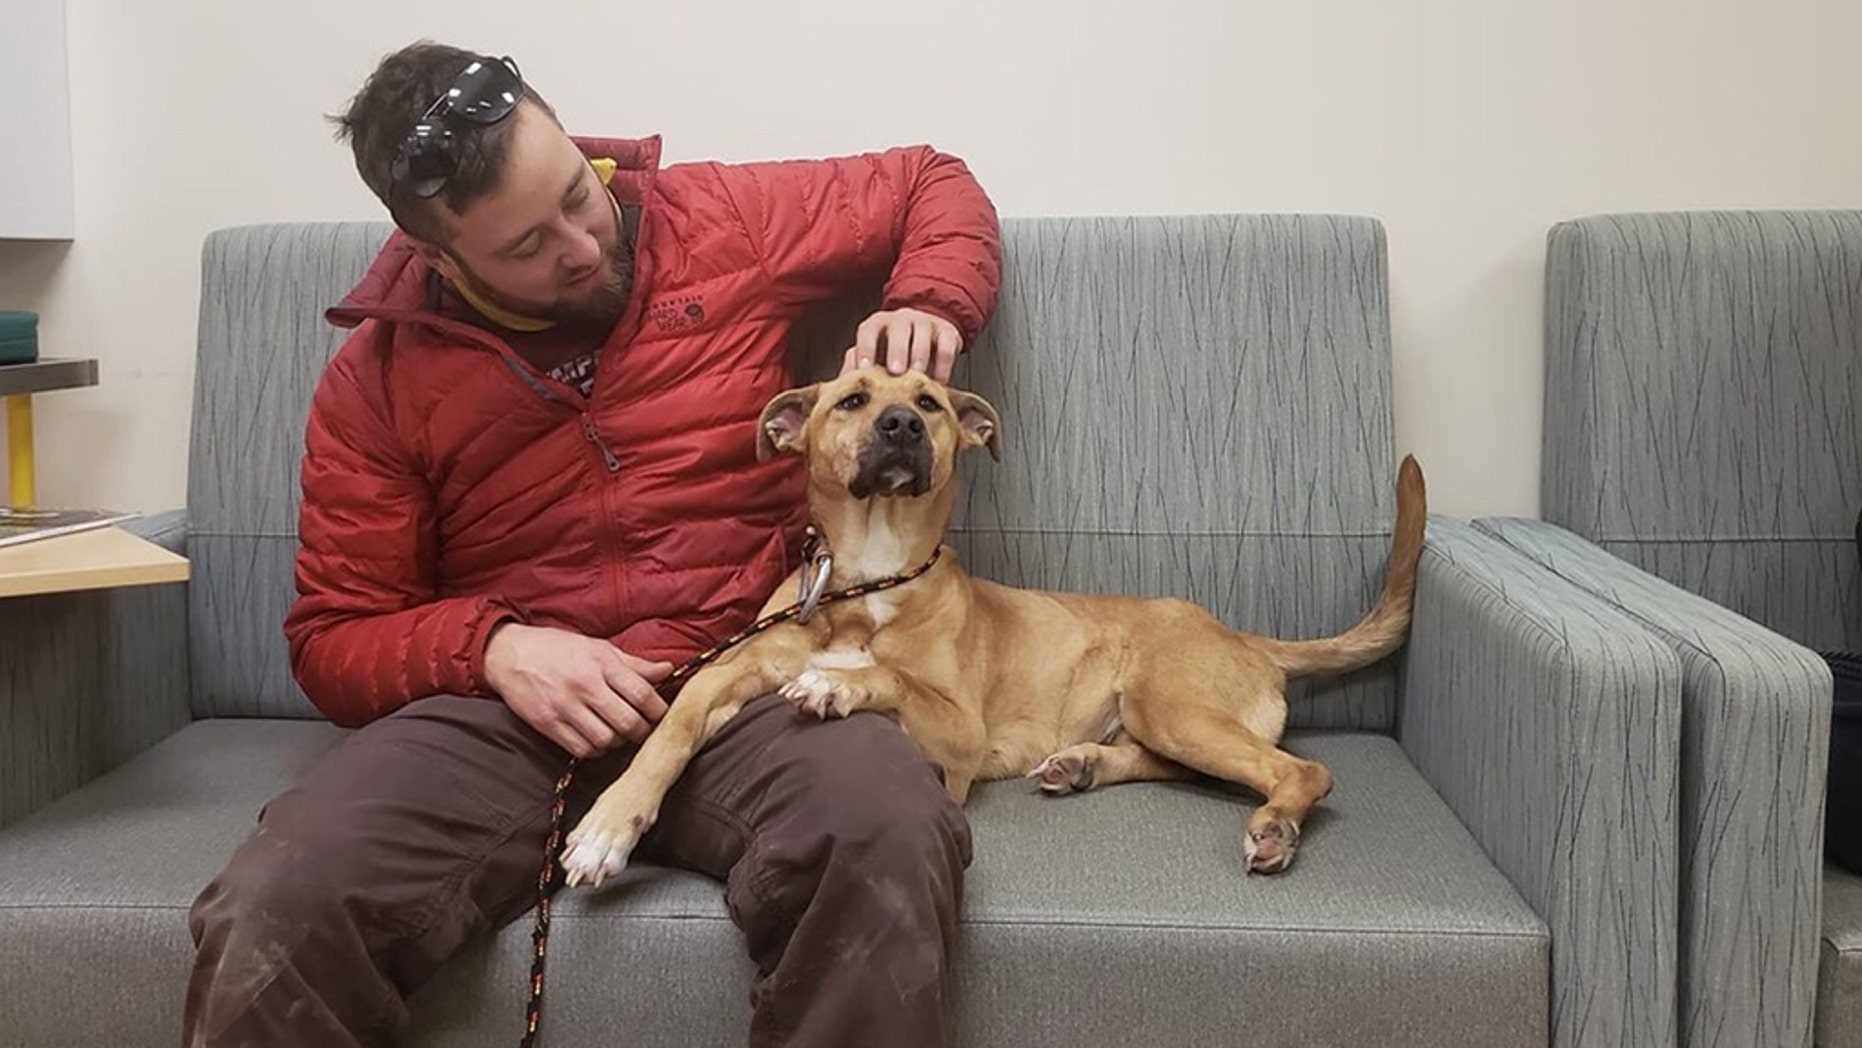 Matthew Glatz plans to help find ideal adoptees for the special pup, with assistance from a non-kennel adoption agency in Maine.